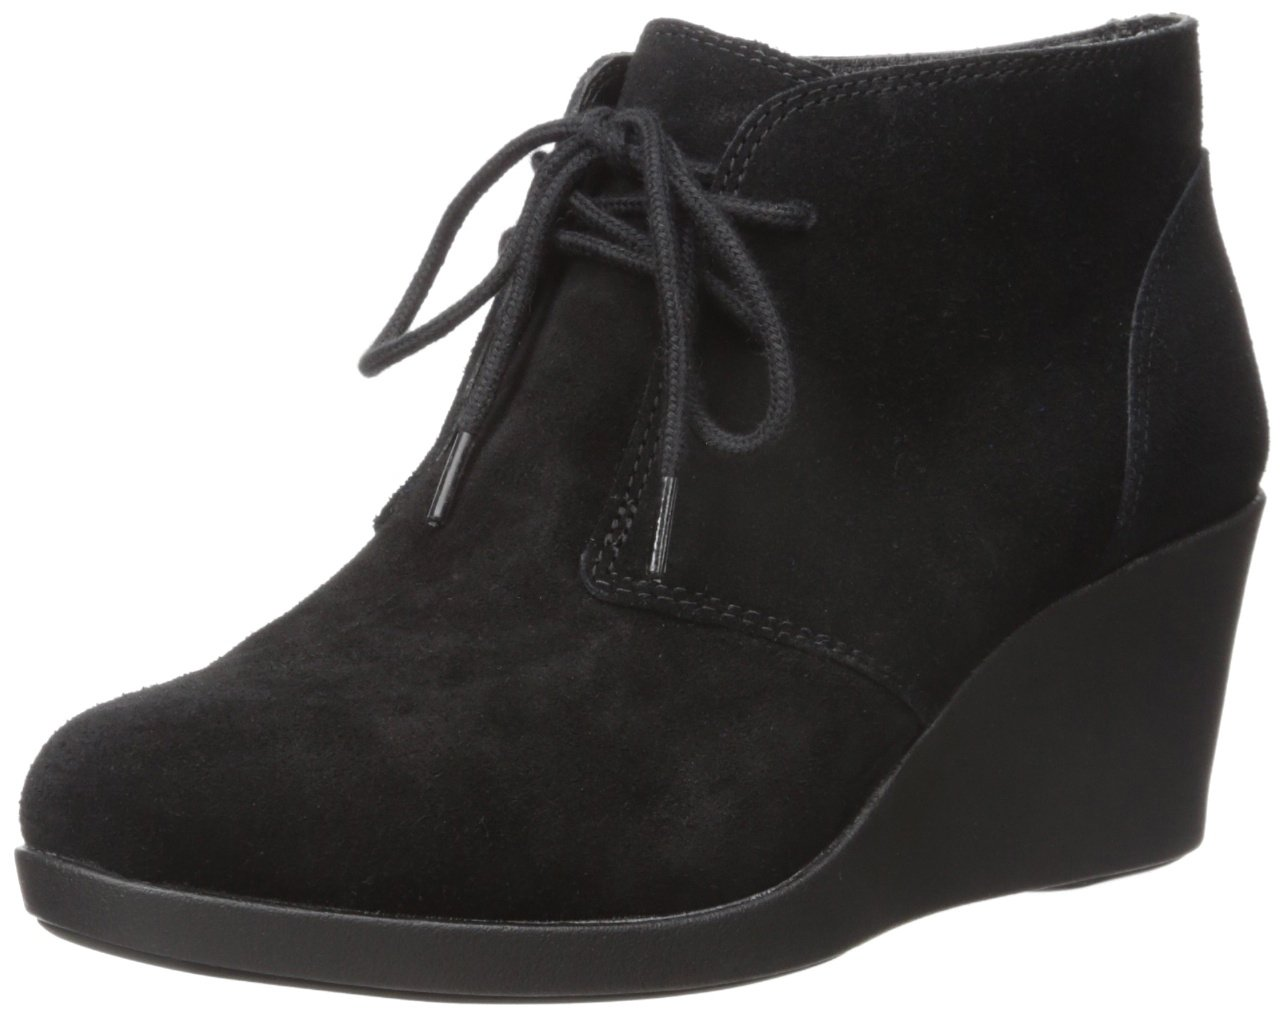 Crocs Women's Leigh Suede Wedge Shootie Boot B01A6LLFCY 11 B(M) US|Black